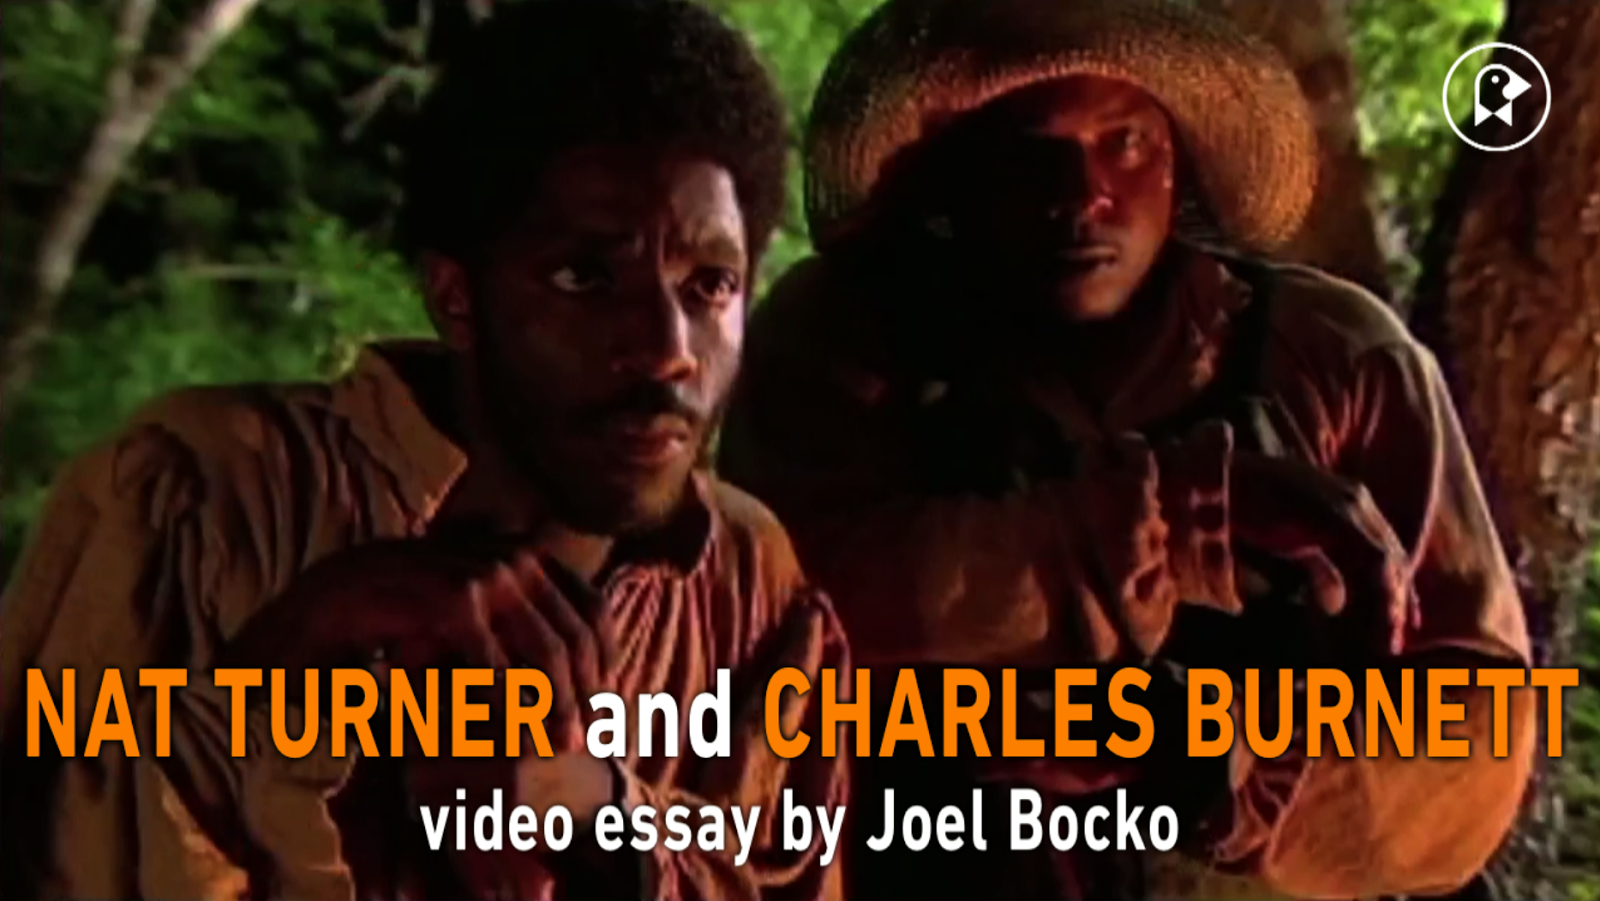 lost in the movies formerly the dancing image nat turner nat turner charles burnett video essay on nat turner a troublesome property